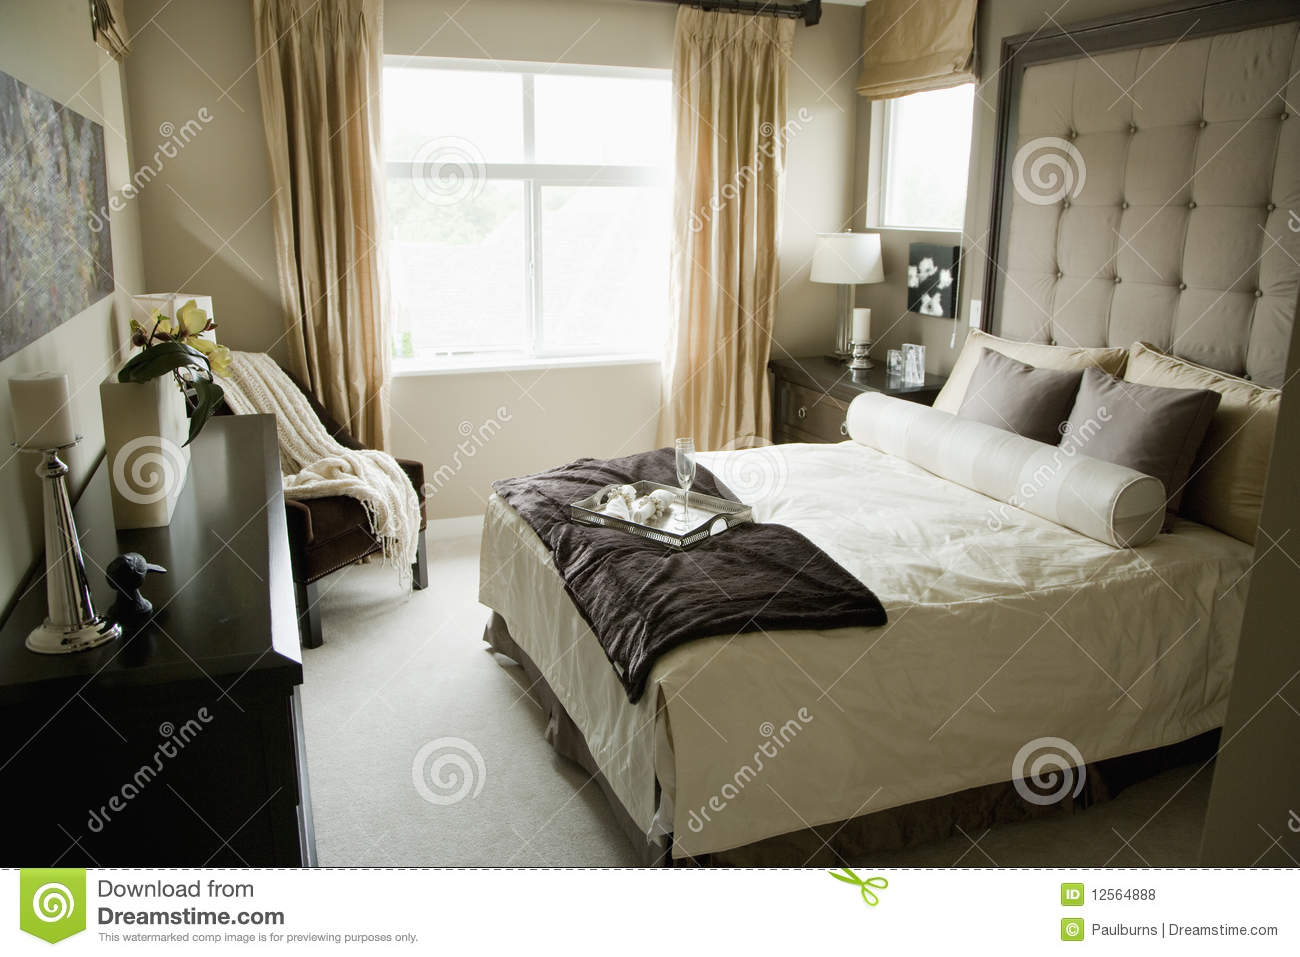 Monochromatic bedroom royalty free stock photos image for Monochromatic bedroom designs